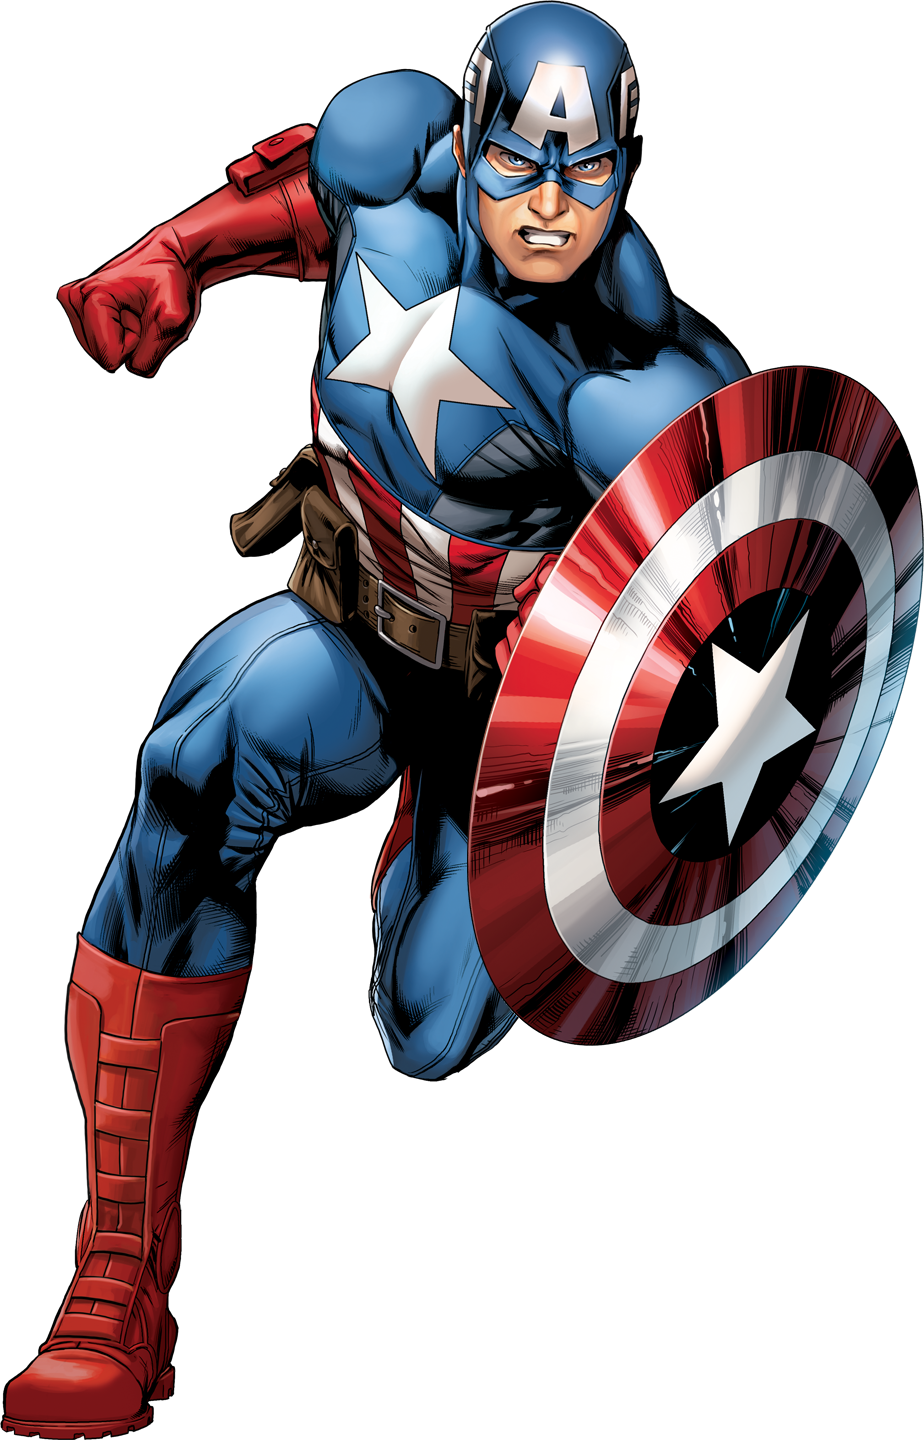 Image - Captain America 1.png | Marvelu0027s Avengers Assemble Wiki | FANDOM  powered by Wikia - Marvel PNG